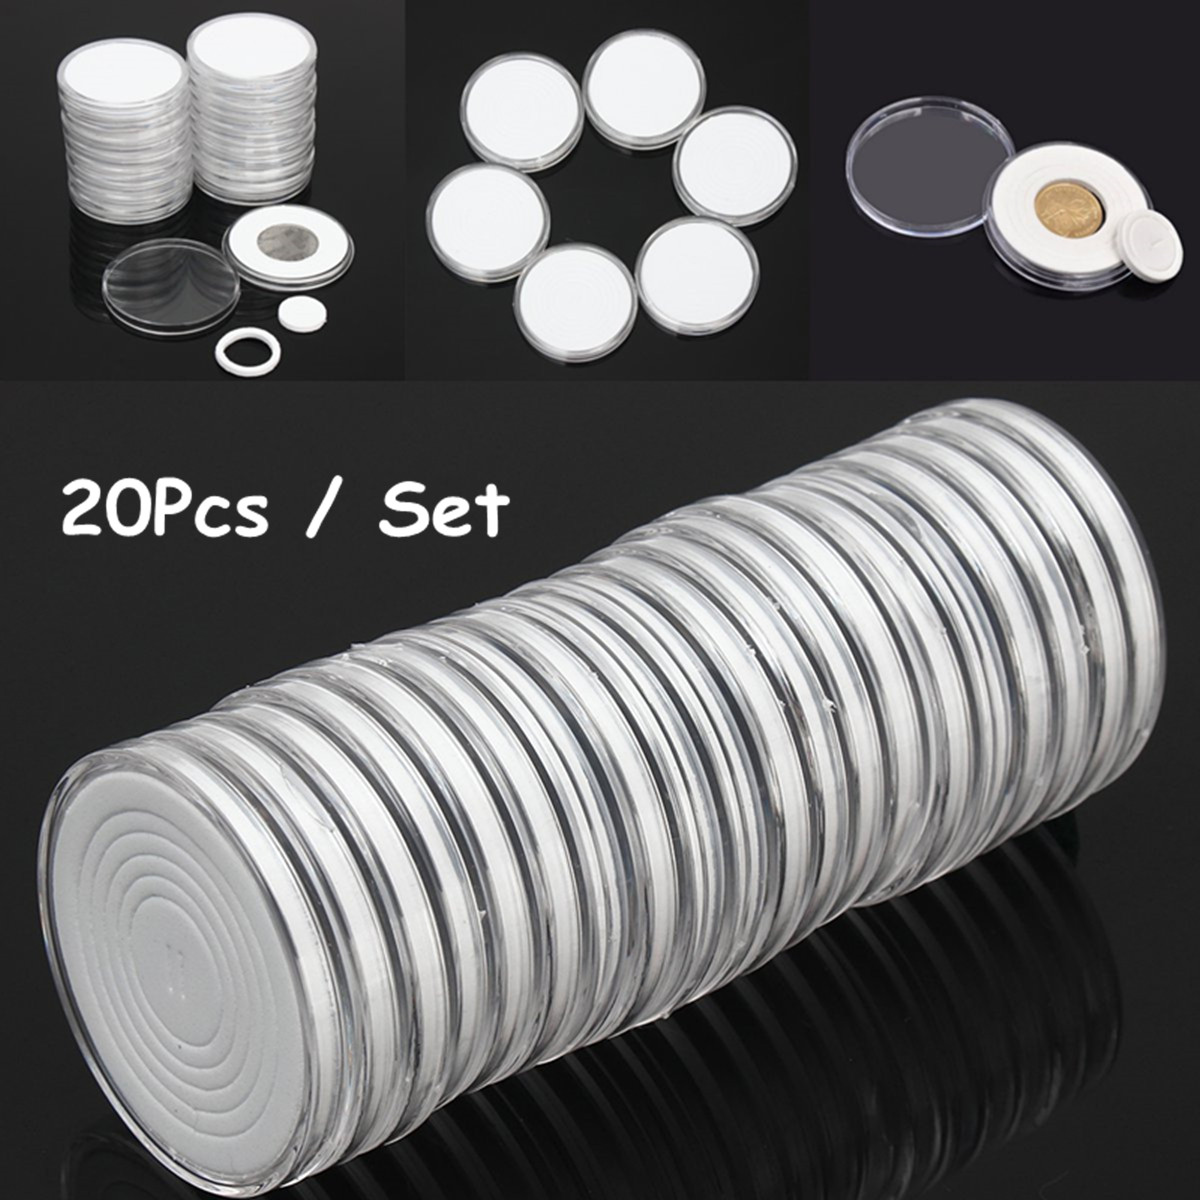 Lot Clear Round Coin Storage Cases Plastic Capsules Holders Container Boxes 40mm